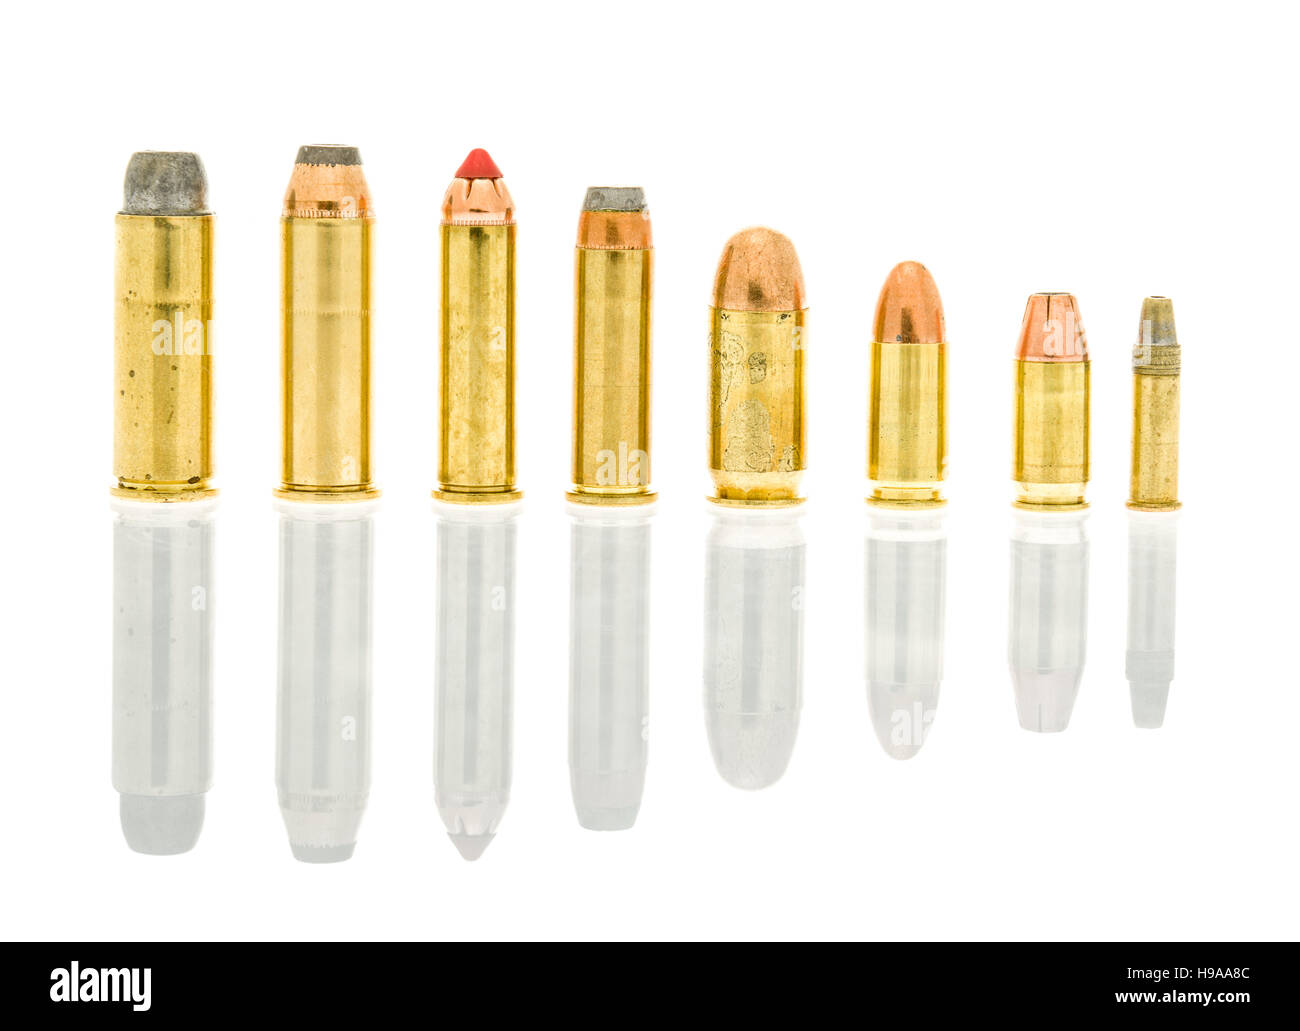 Hand gun caliber bullets on an isolated background including 45 long colt, 44 rem mag, 357 mag, 38 special, 45 acp, - Stock Image